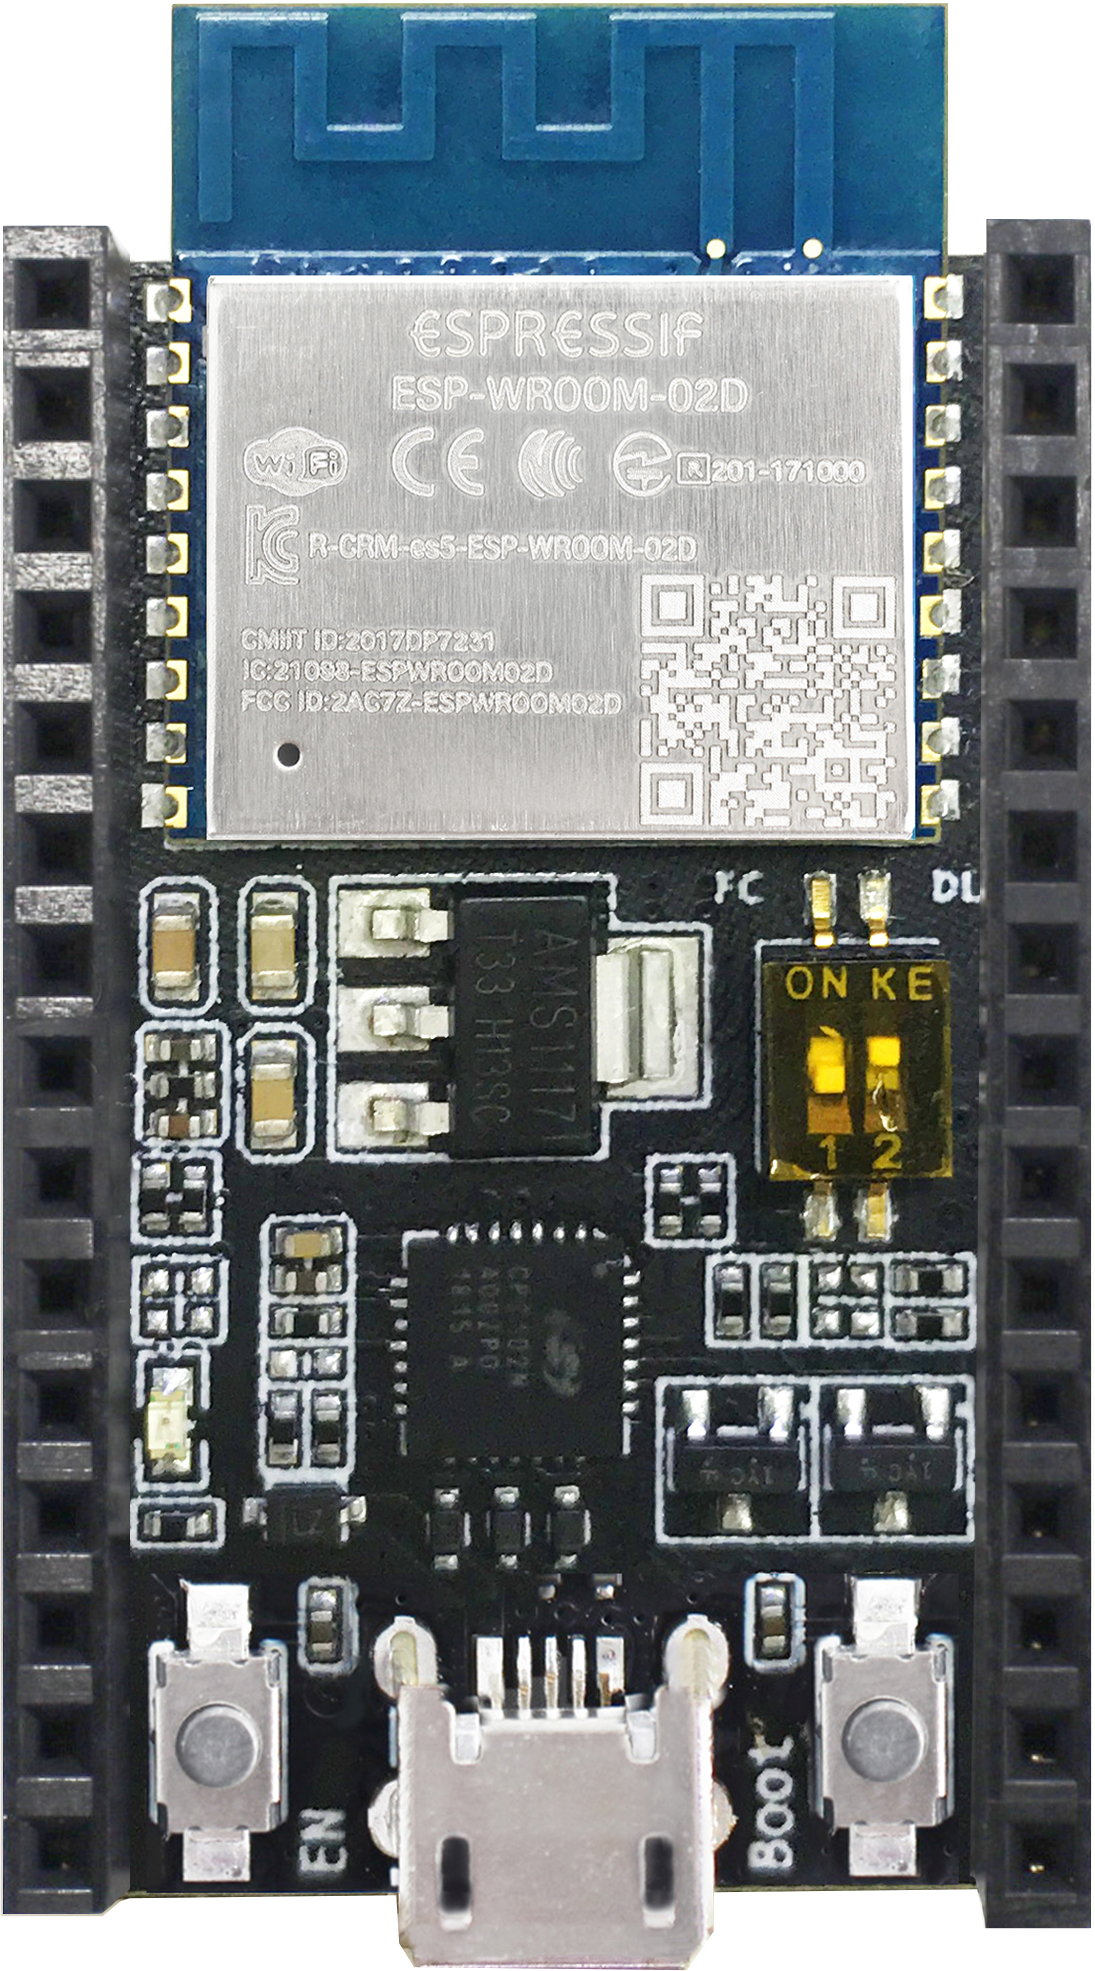 This article asks you to understand the ESP chip and development of Lexin Internet of things